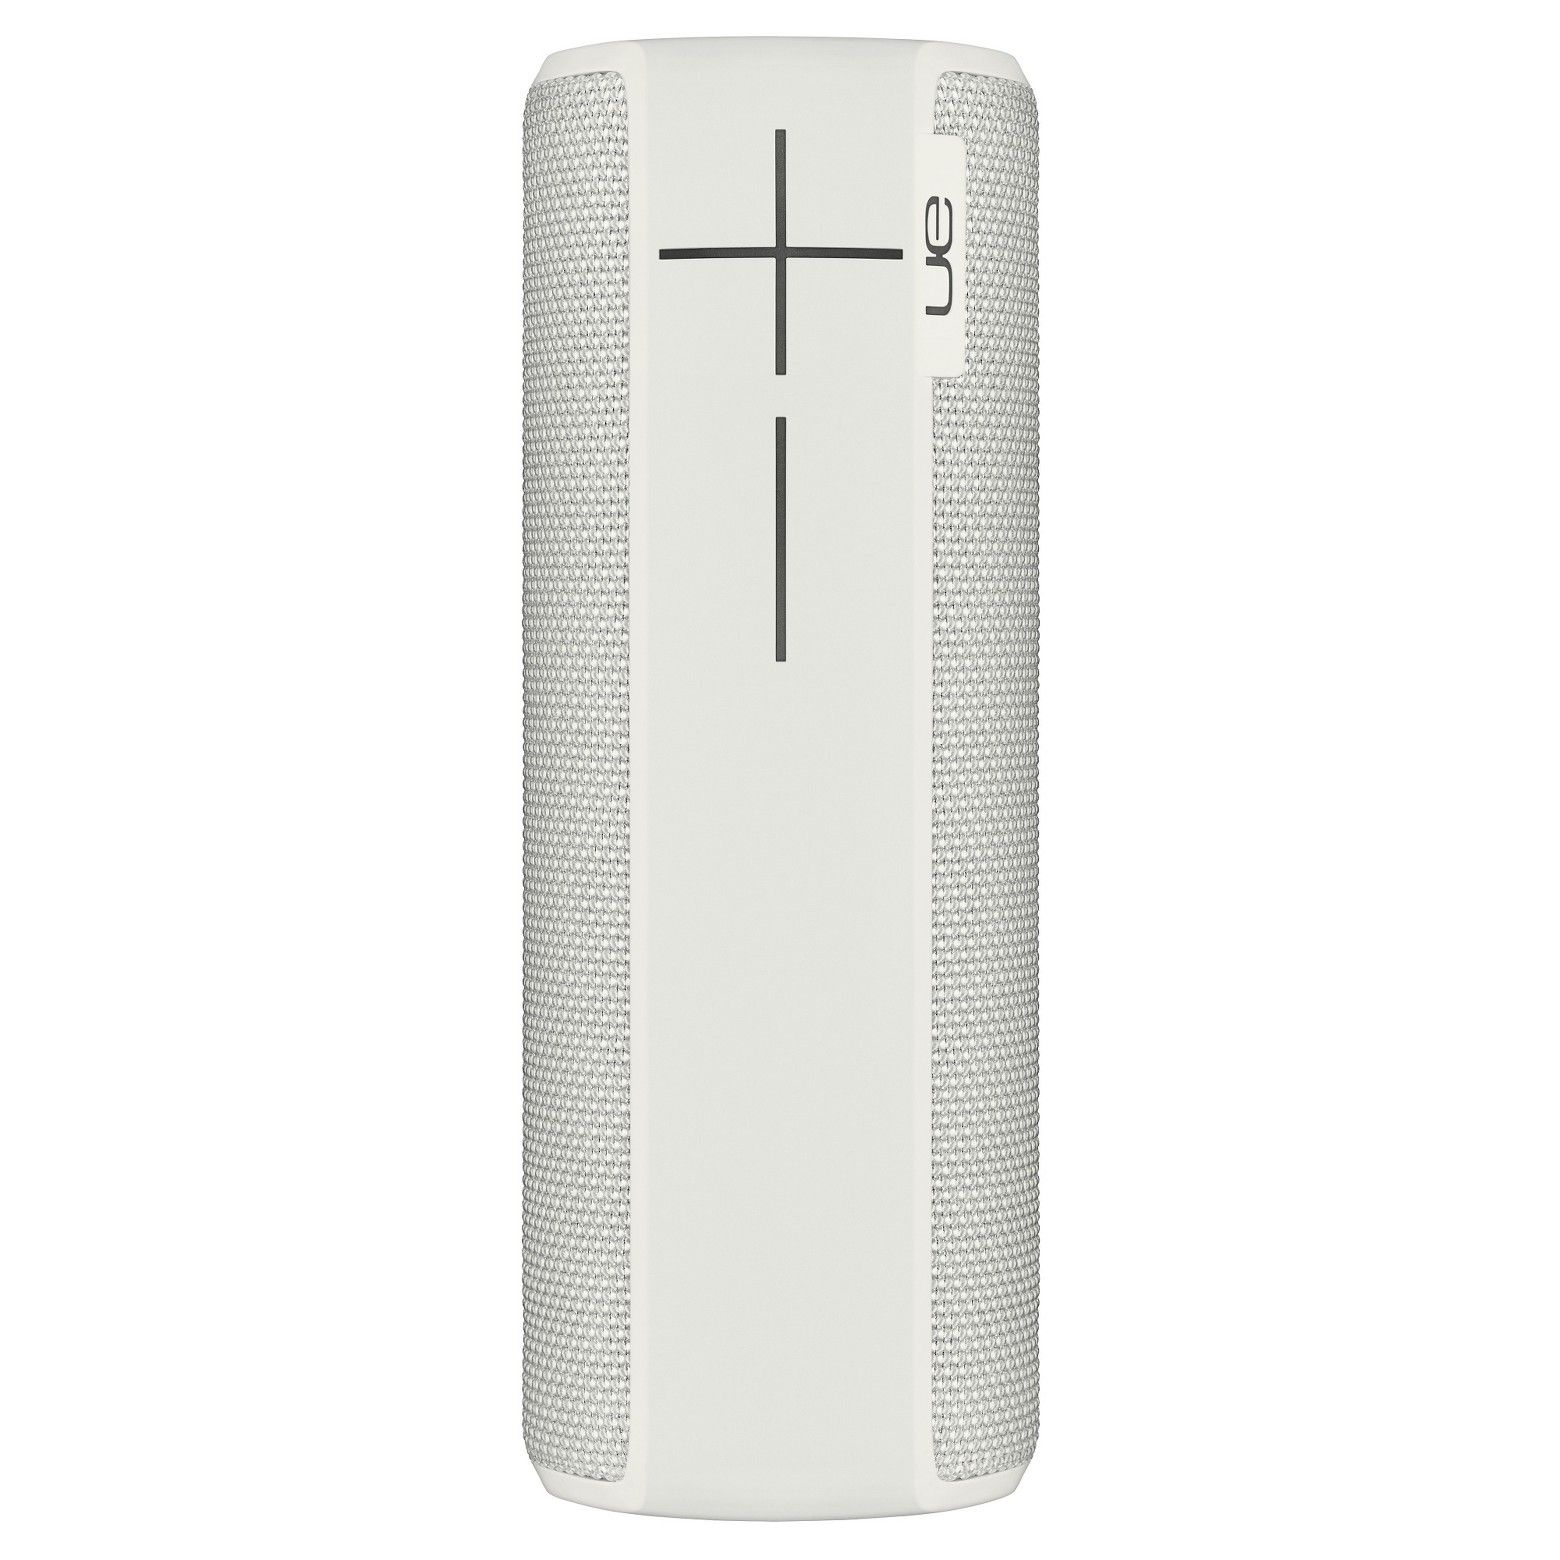 The UE BOOM 2 is the 360degree wireless speaker that